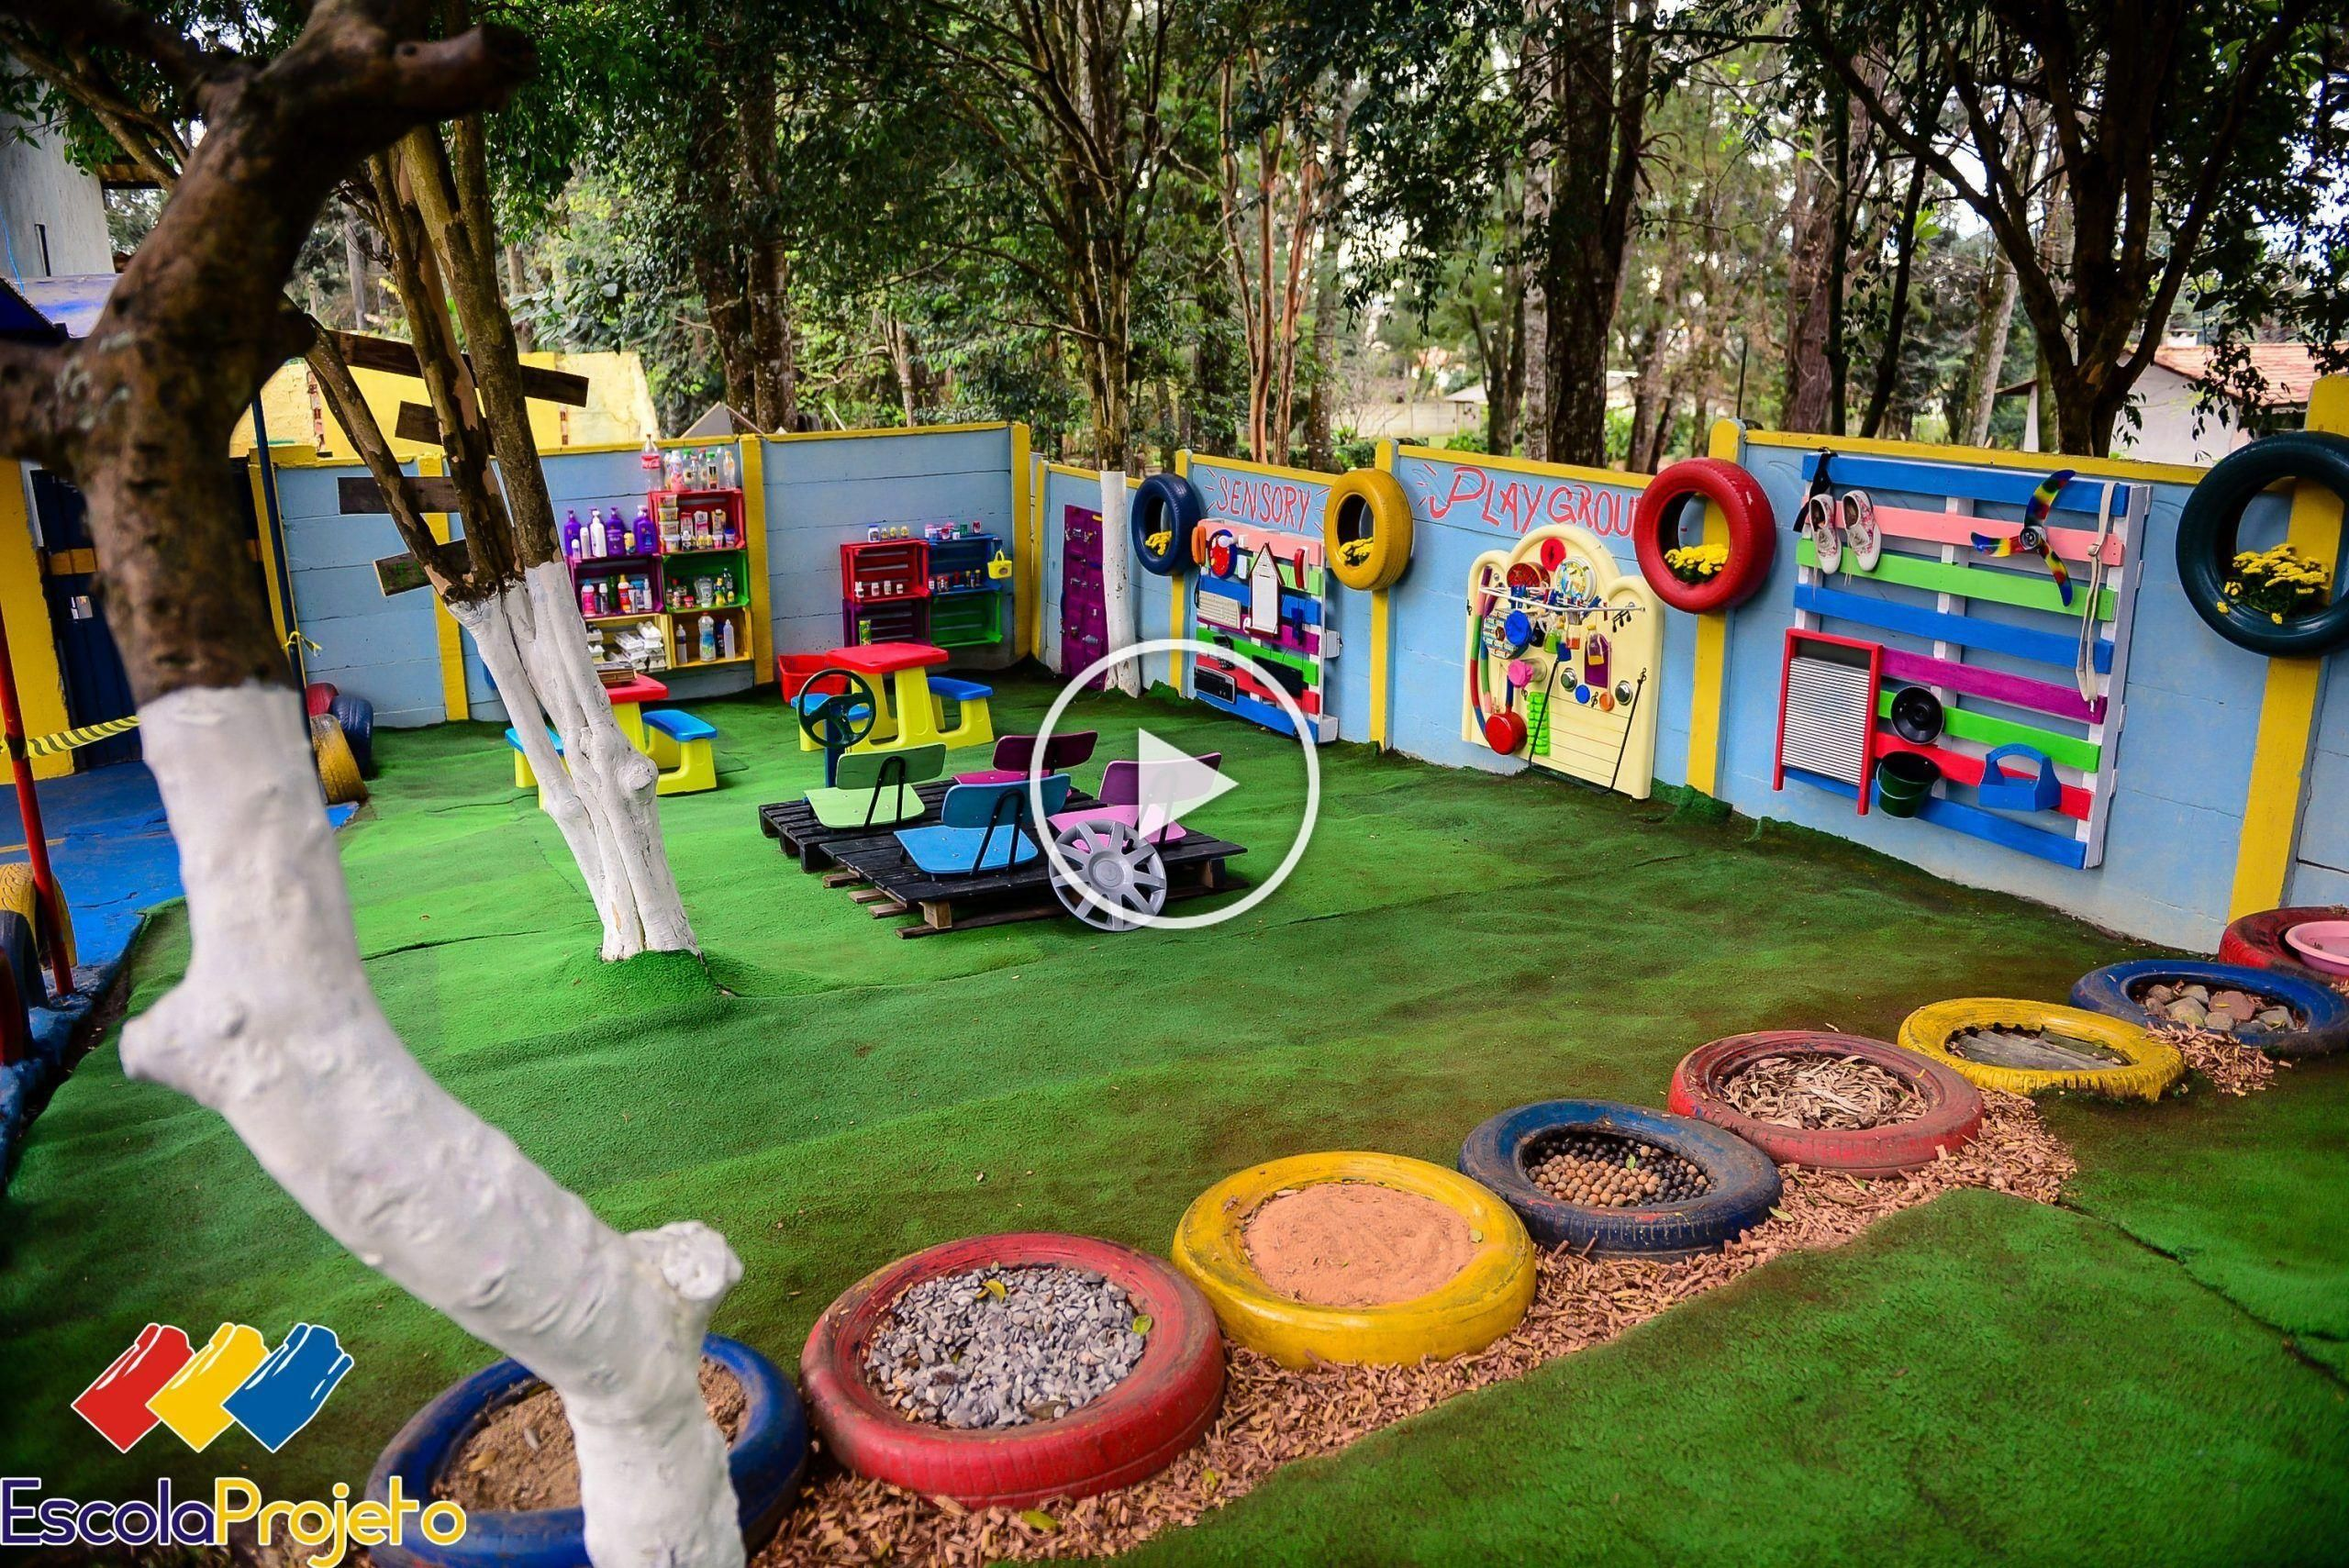 Sensorikpark Sensorikspielplatz Projekt Schule Buntstifte Curitiba Brasilien Kinder Blog Blo Kids Play Area Childrens Play Area Garden Outdoor Playground